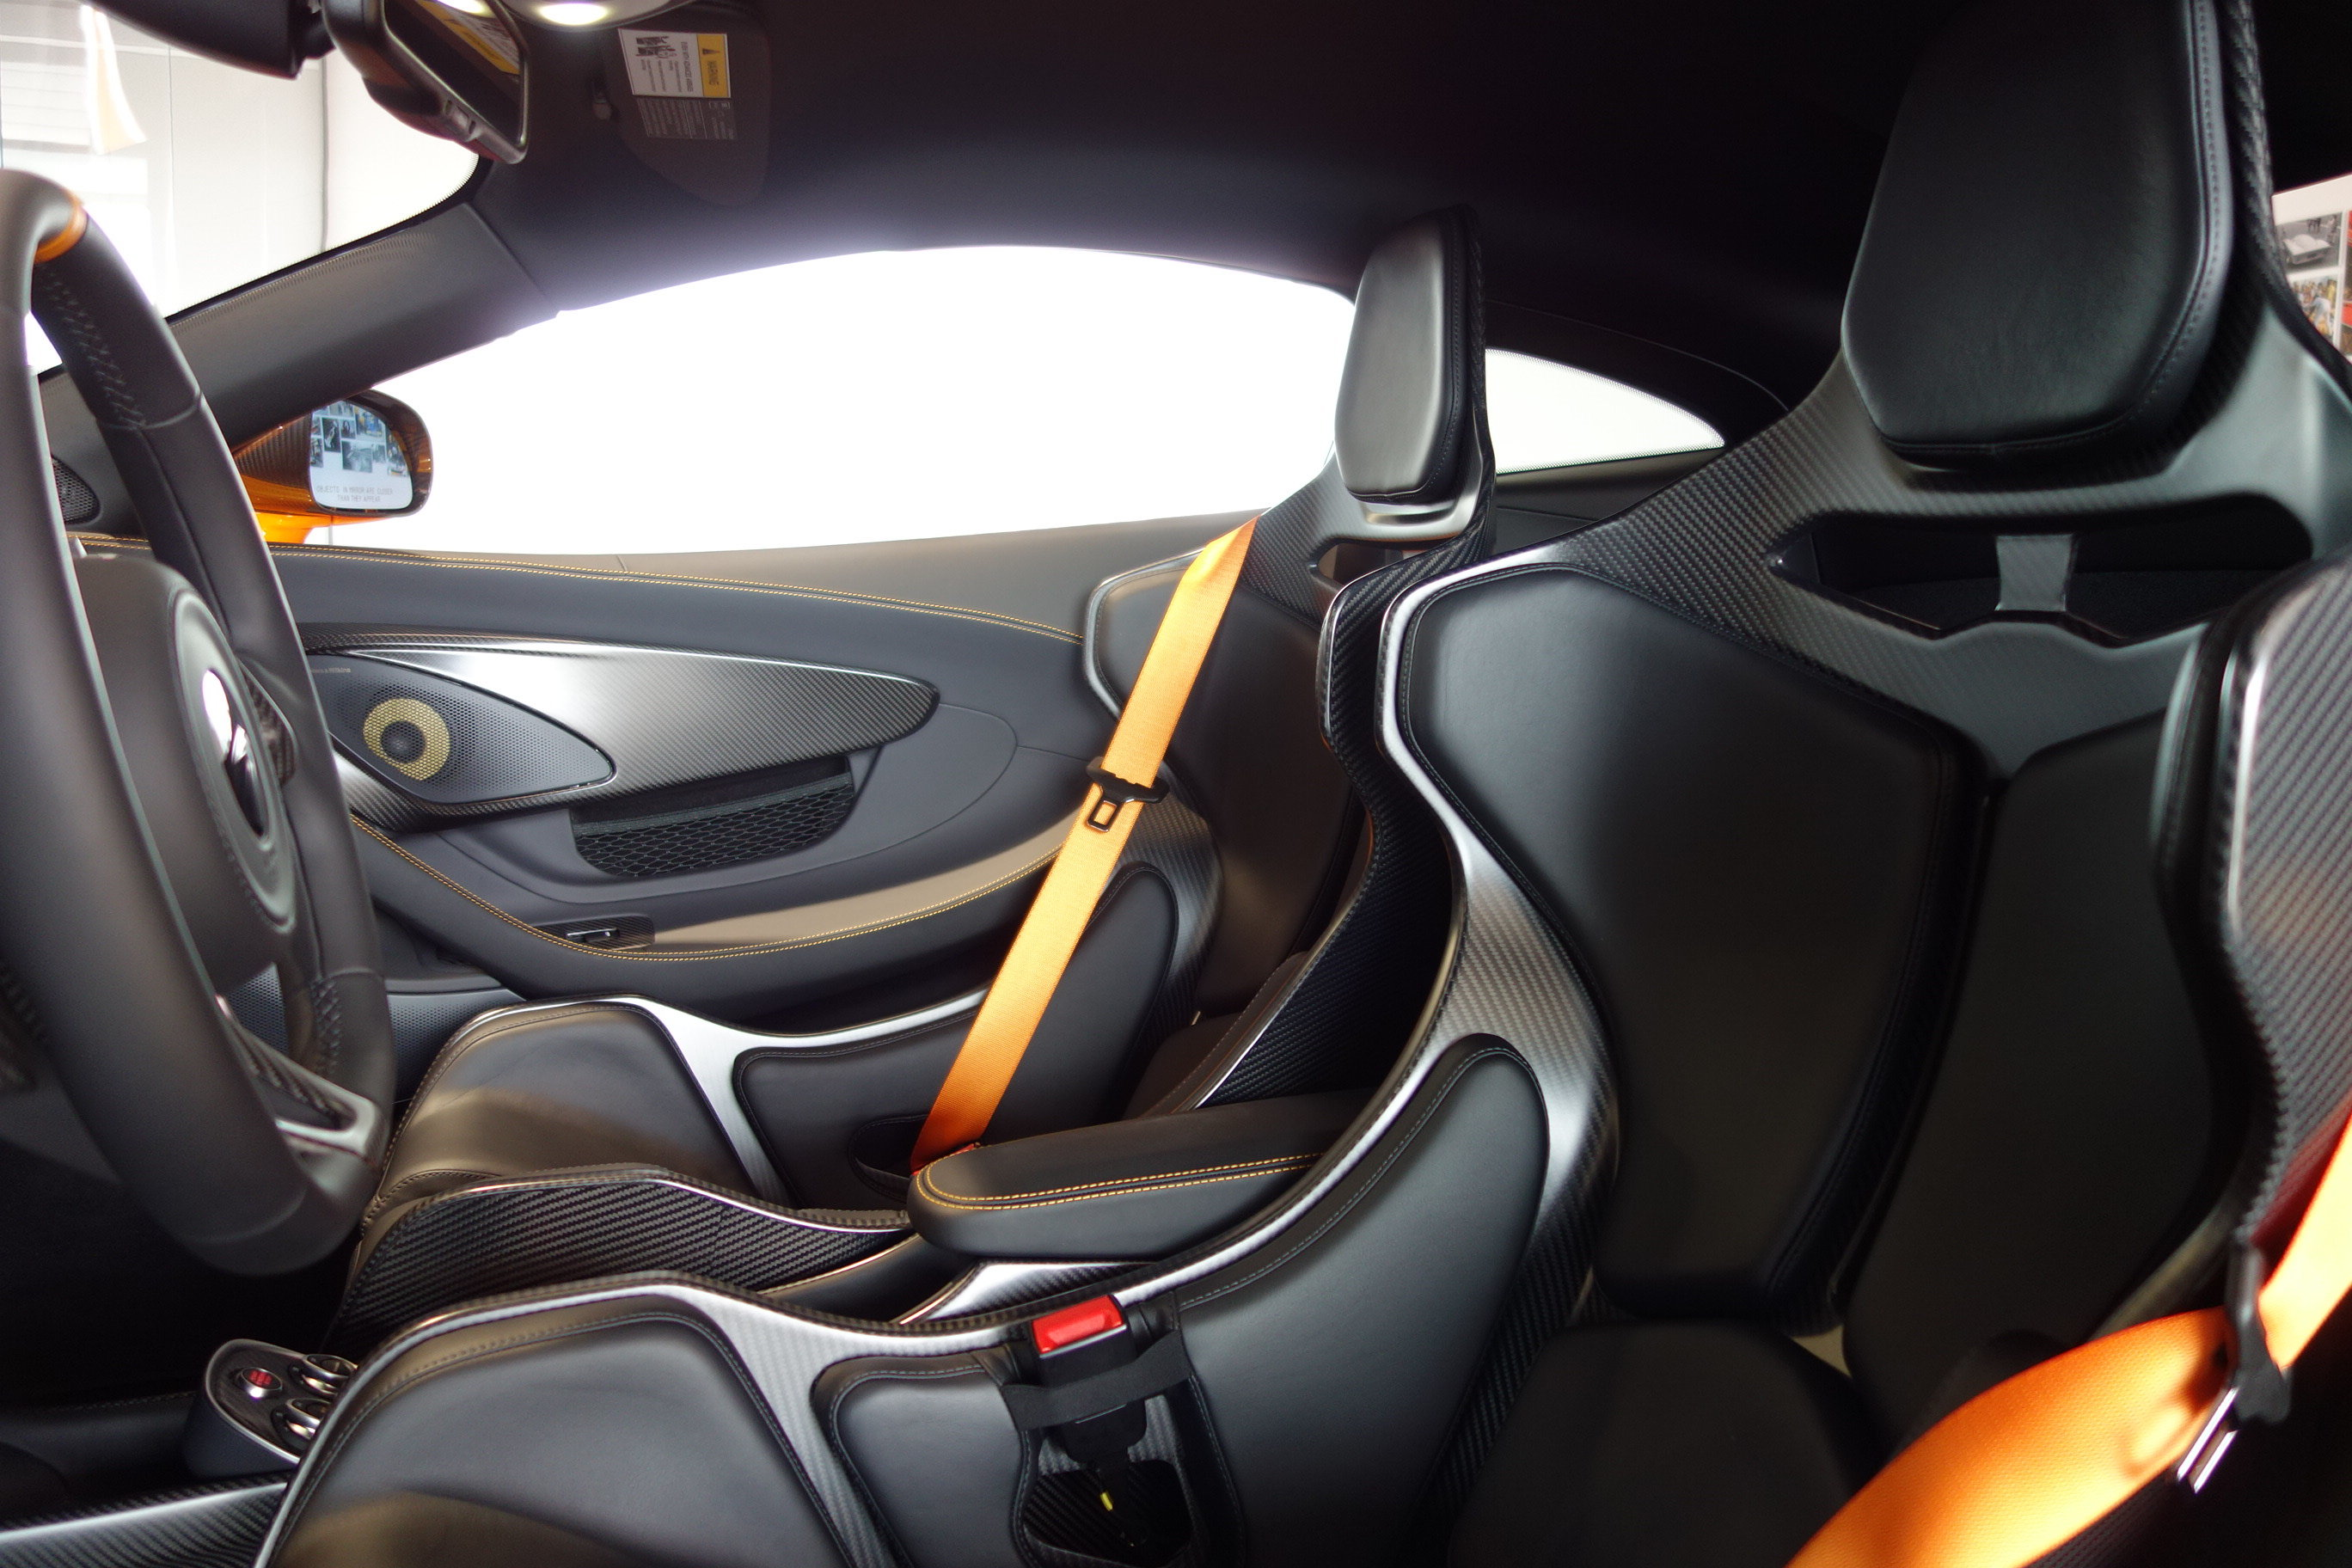 2019 McLaren 600LT 3.8L V8 Twin Turbocharged Engine Automatic Coupe